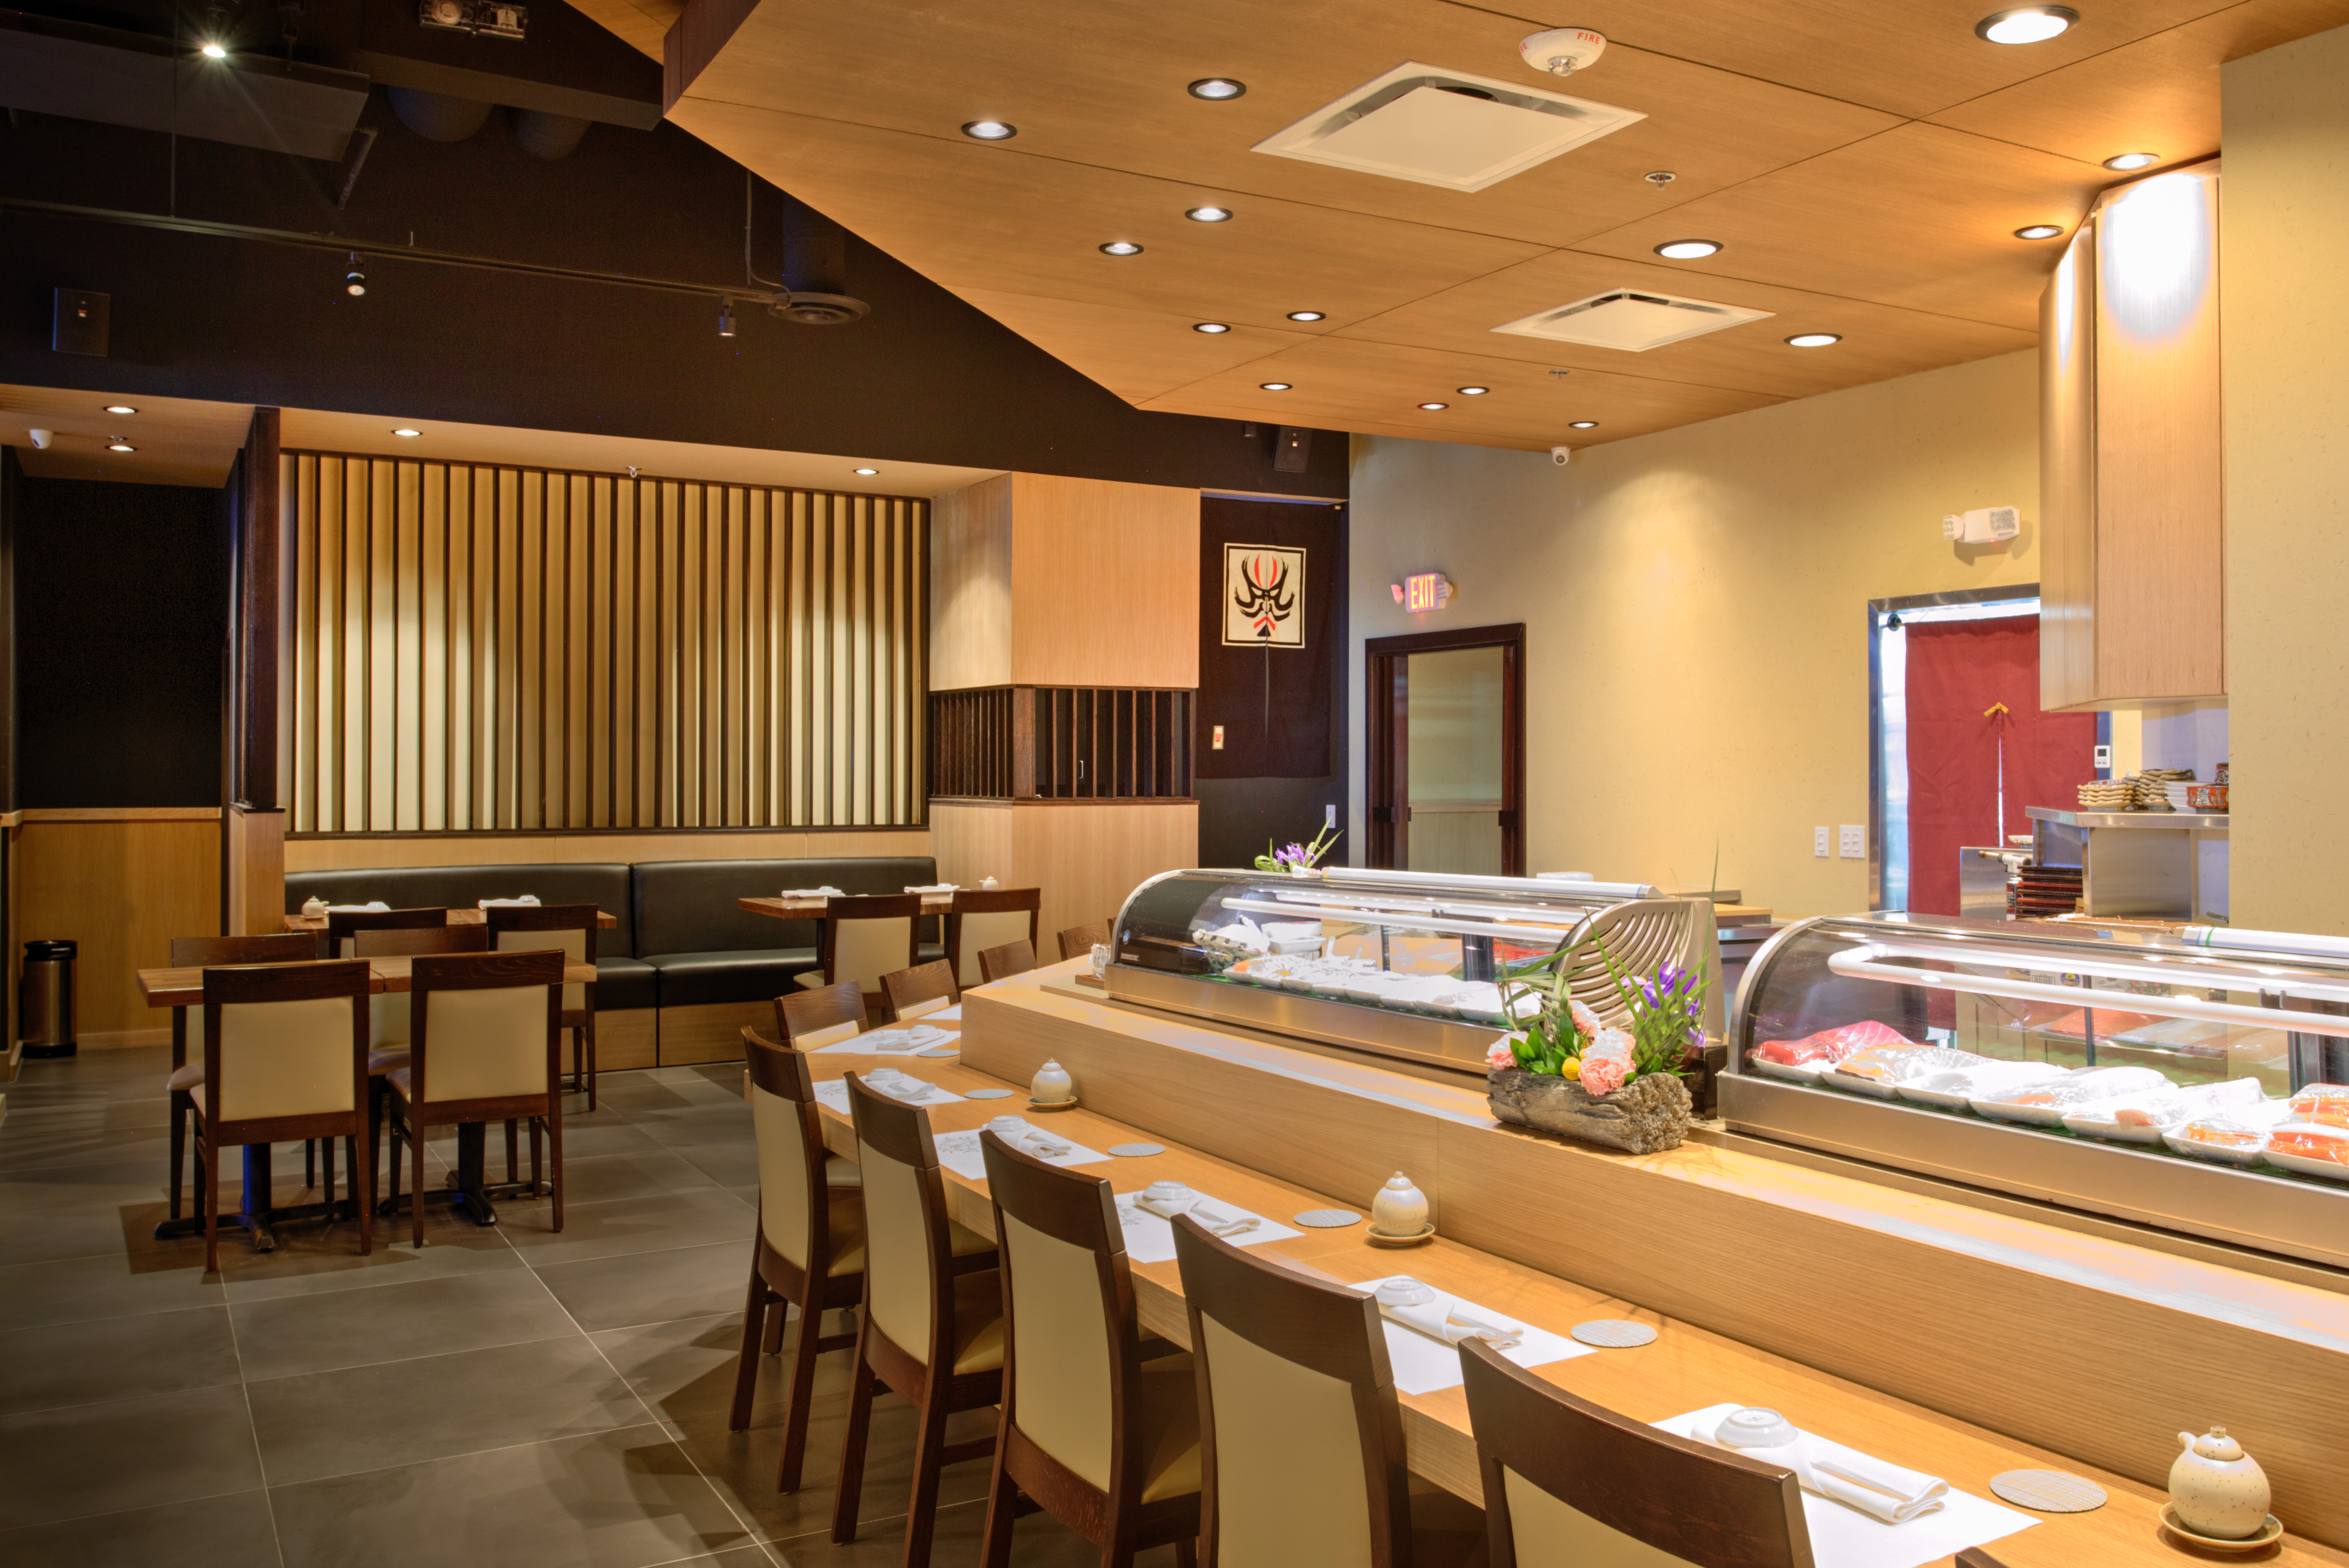 The Simplicity of Sushi Kame's Design Offers the Perfect Backdrop for Out-of-This-World Dinners